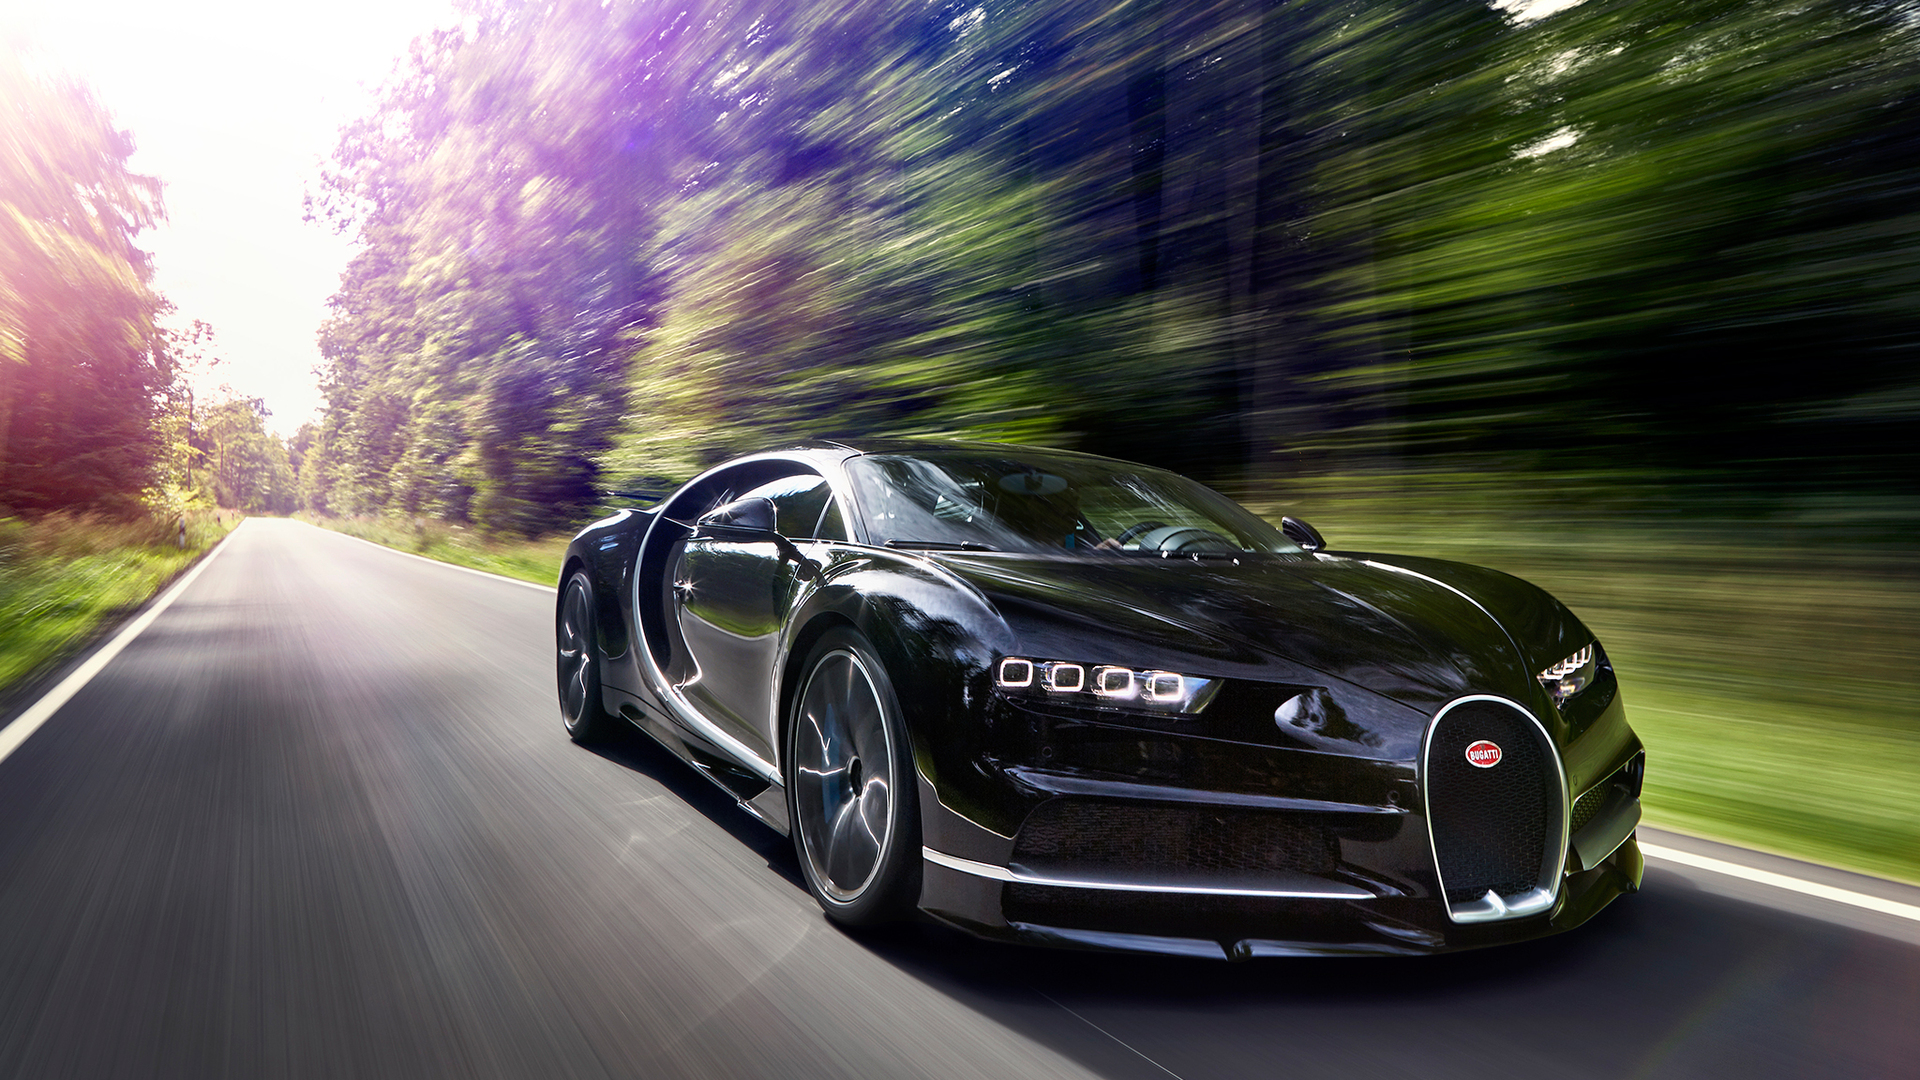 1920x1080 2017 Bugatti Chiron In Motion Laptop Full Hd 1080p Hd 4k